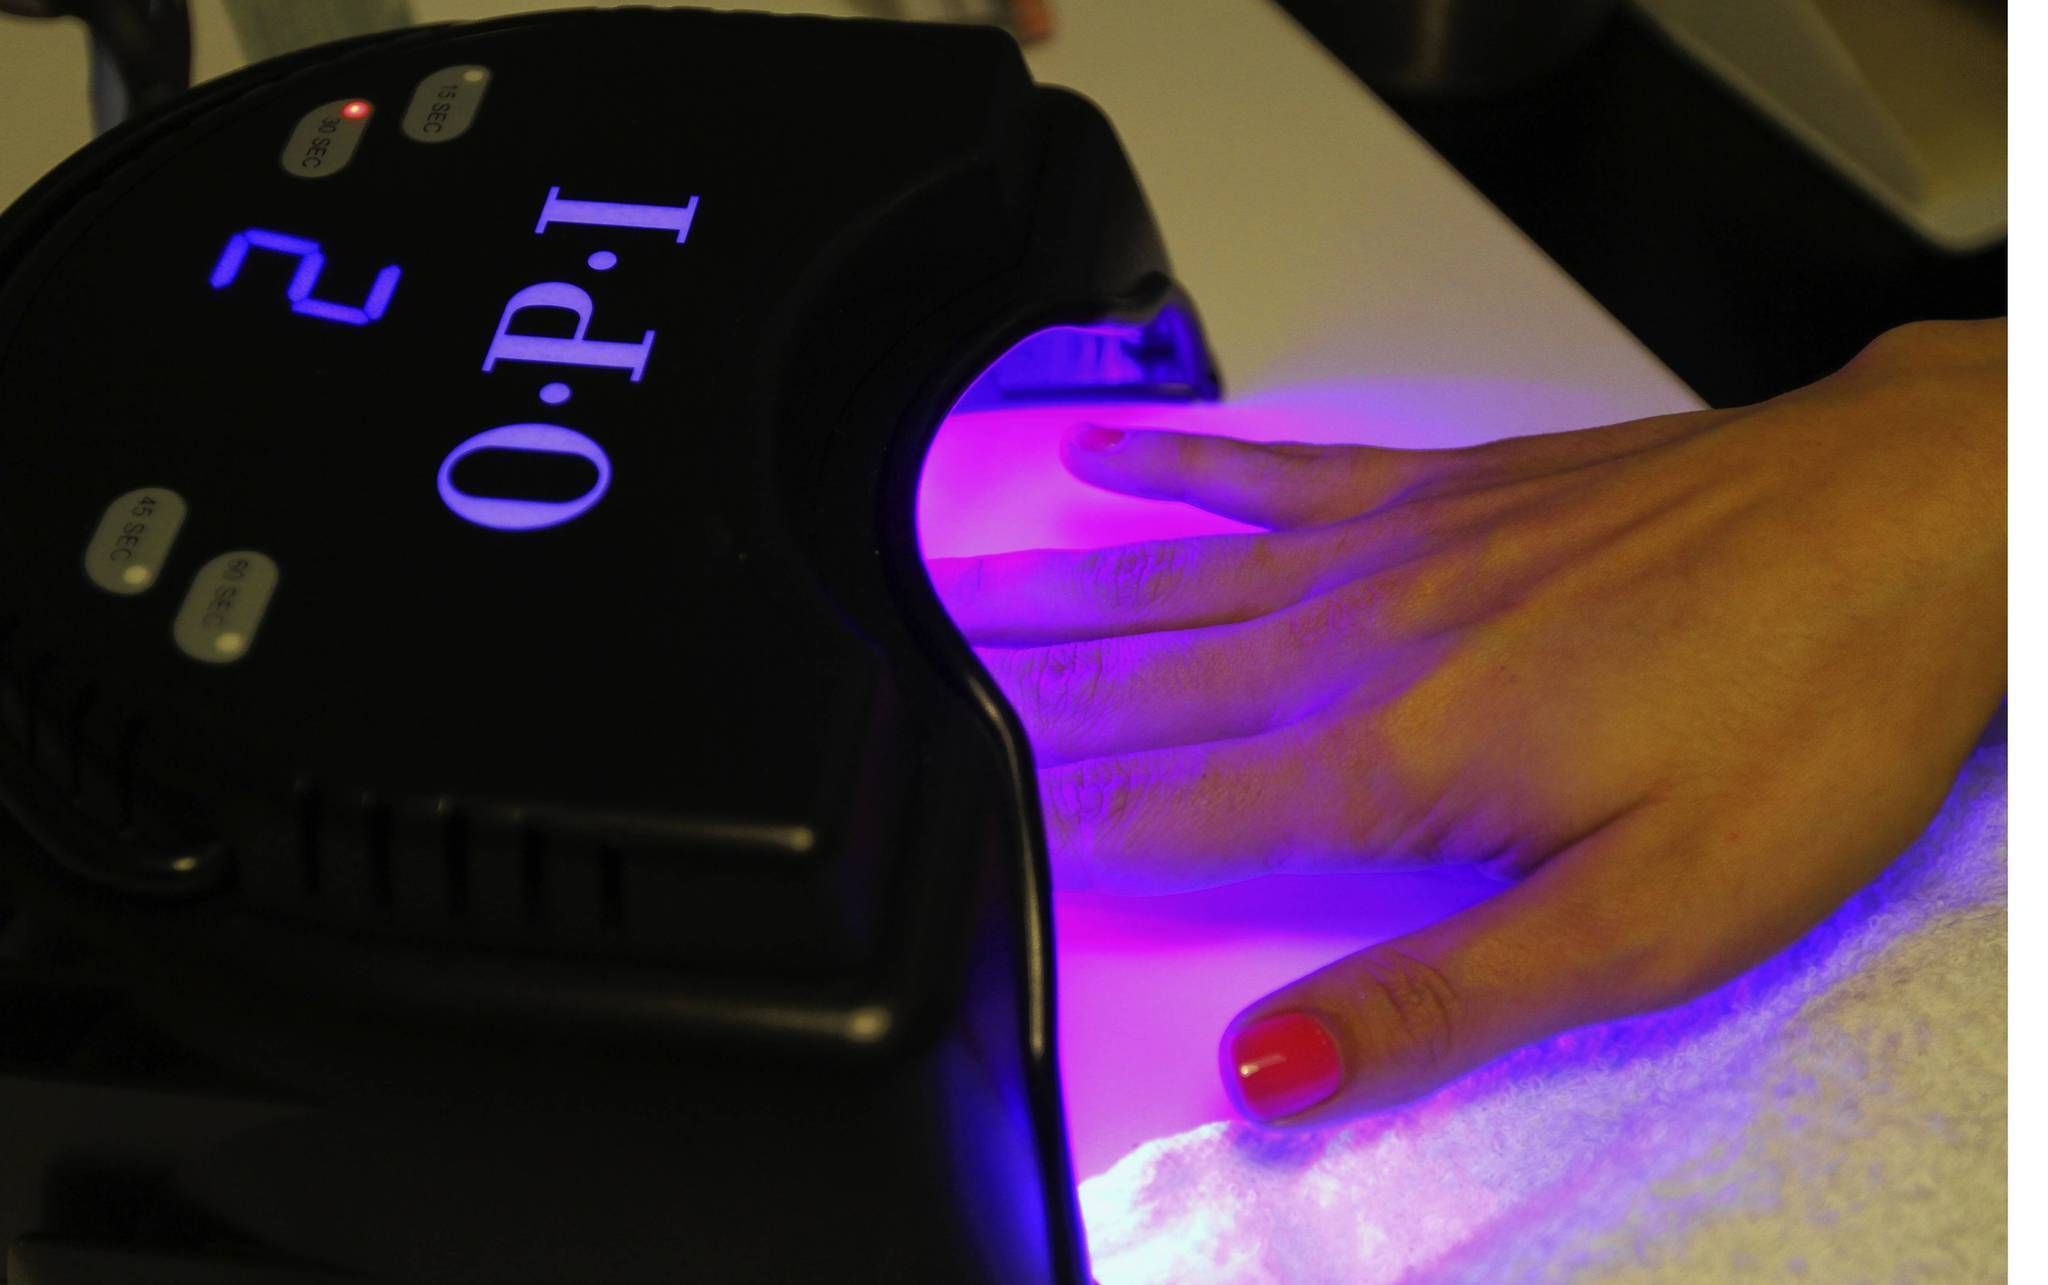 Gel manicures: Safety concern over UV light - Sun Sentinel